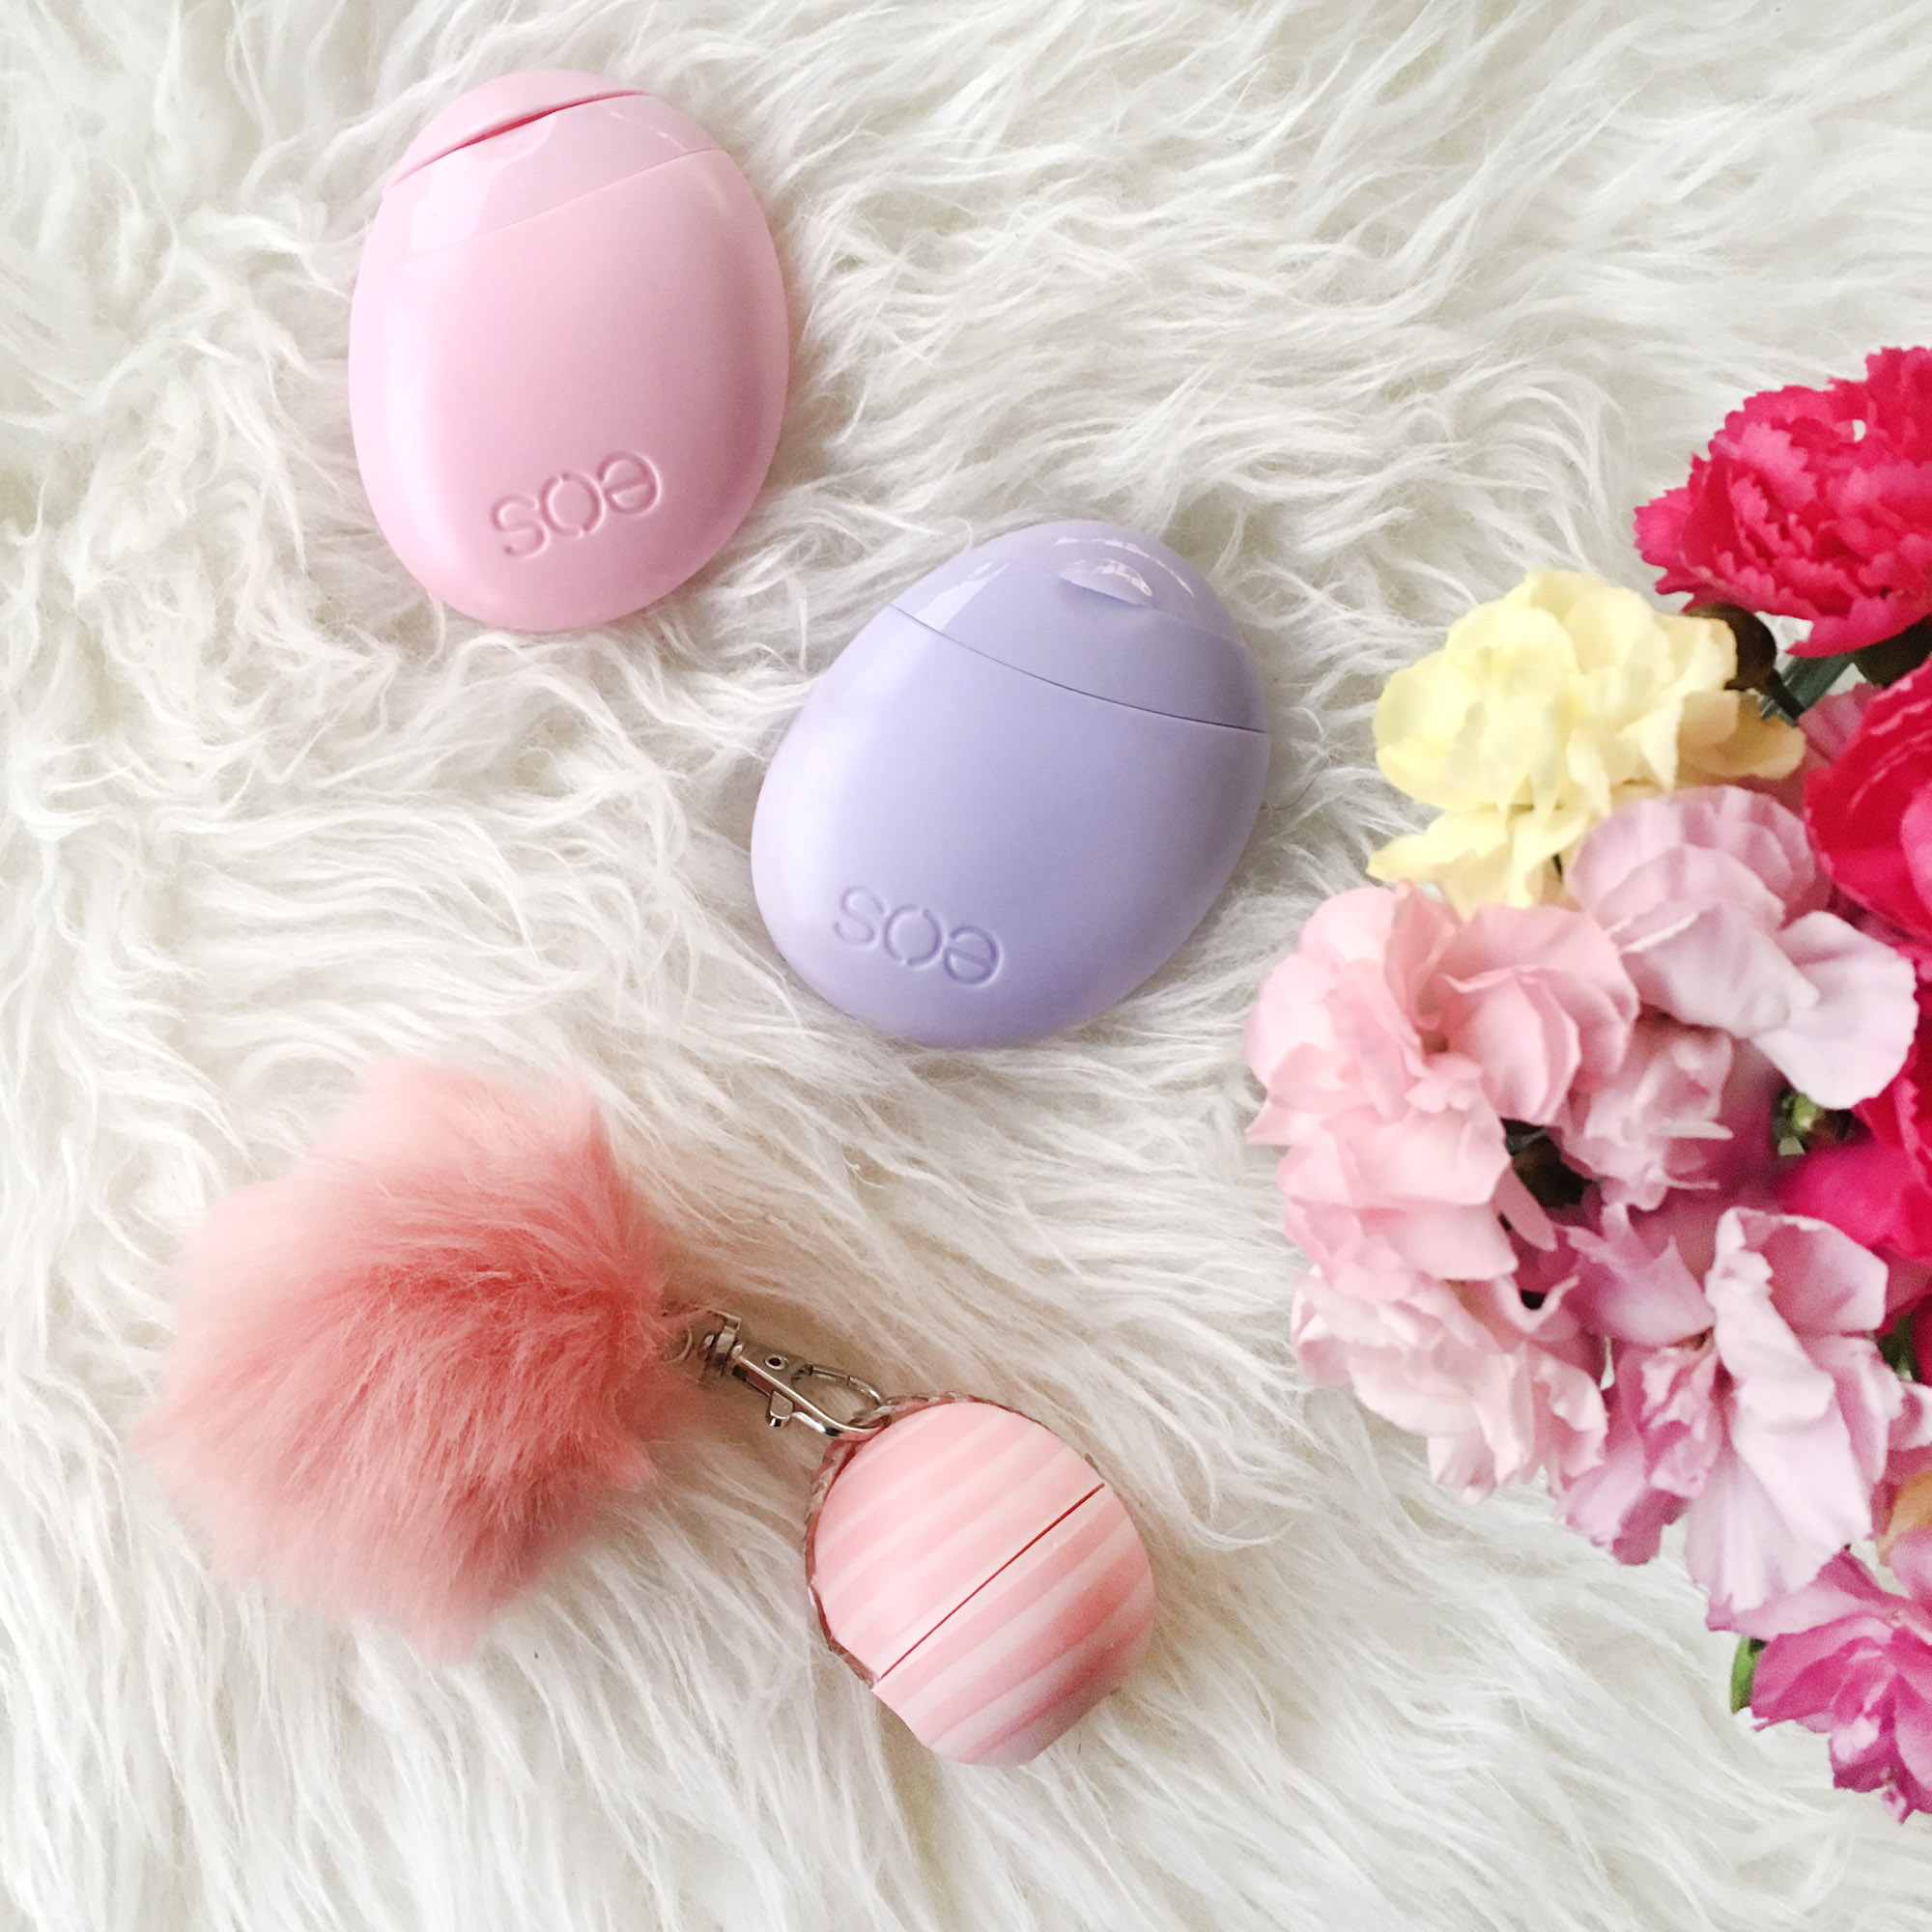 EOS Lip Balm Spring Essentials Flatlay